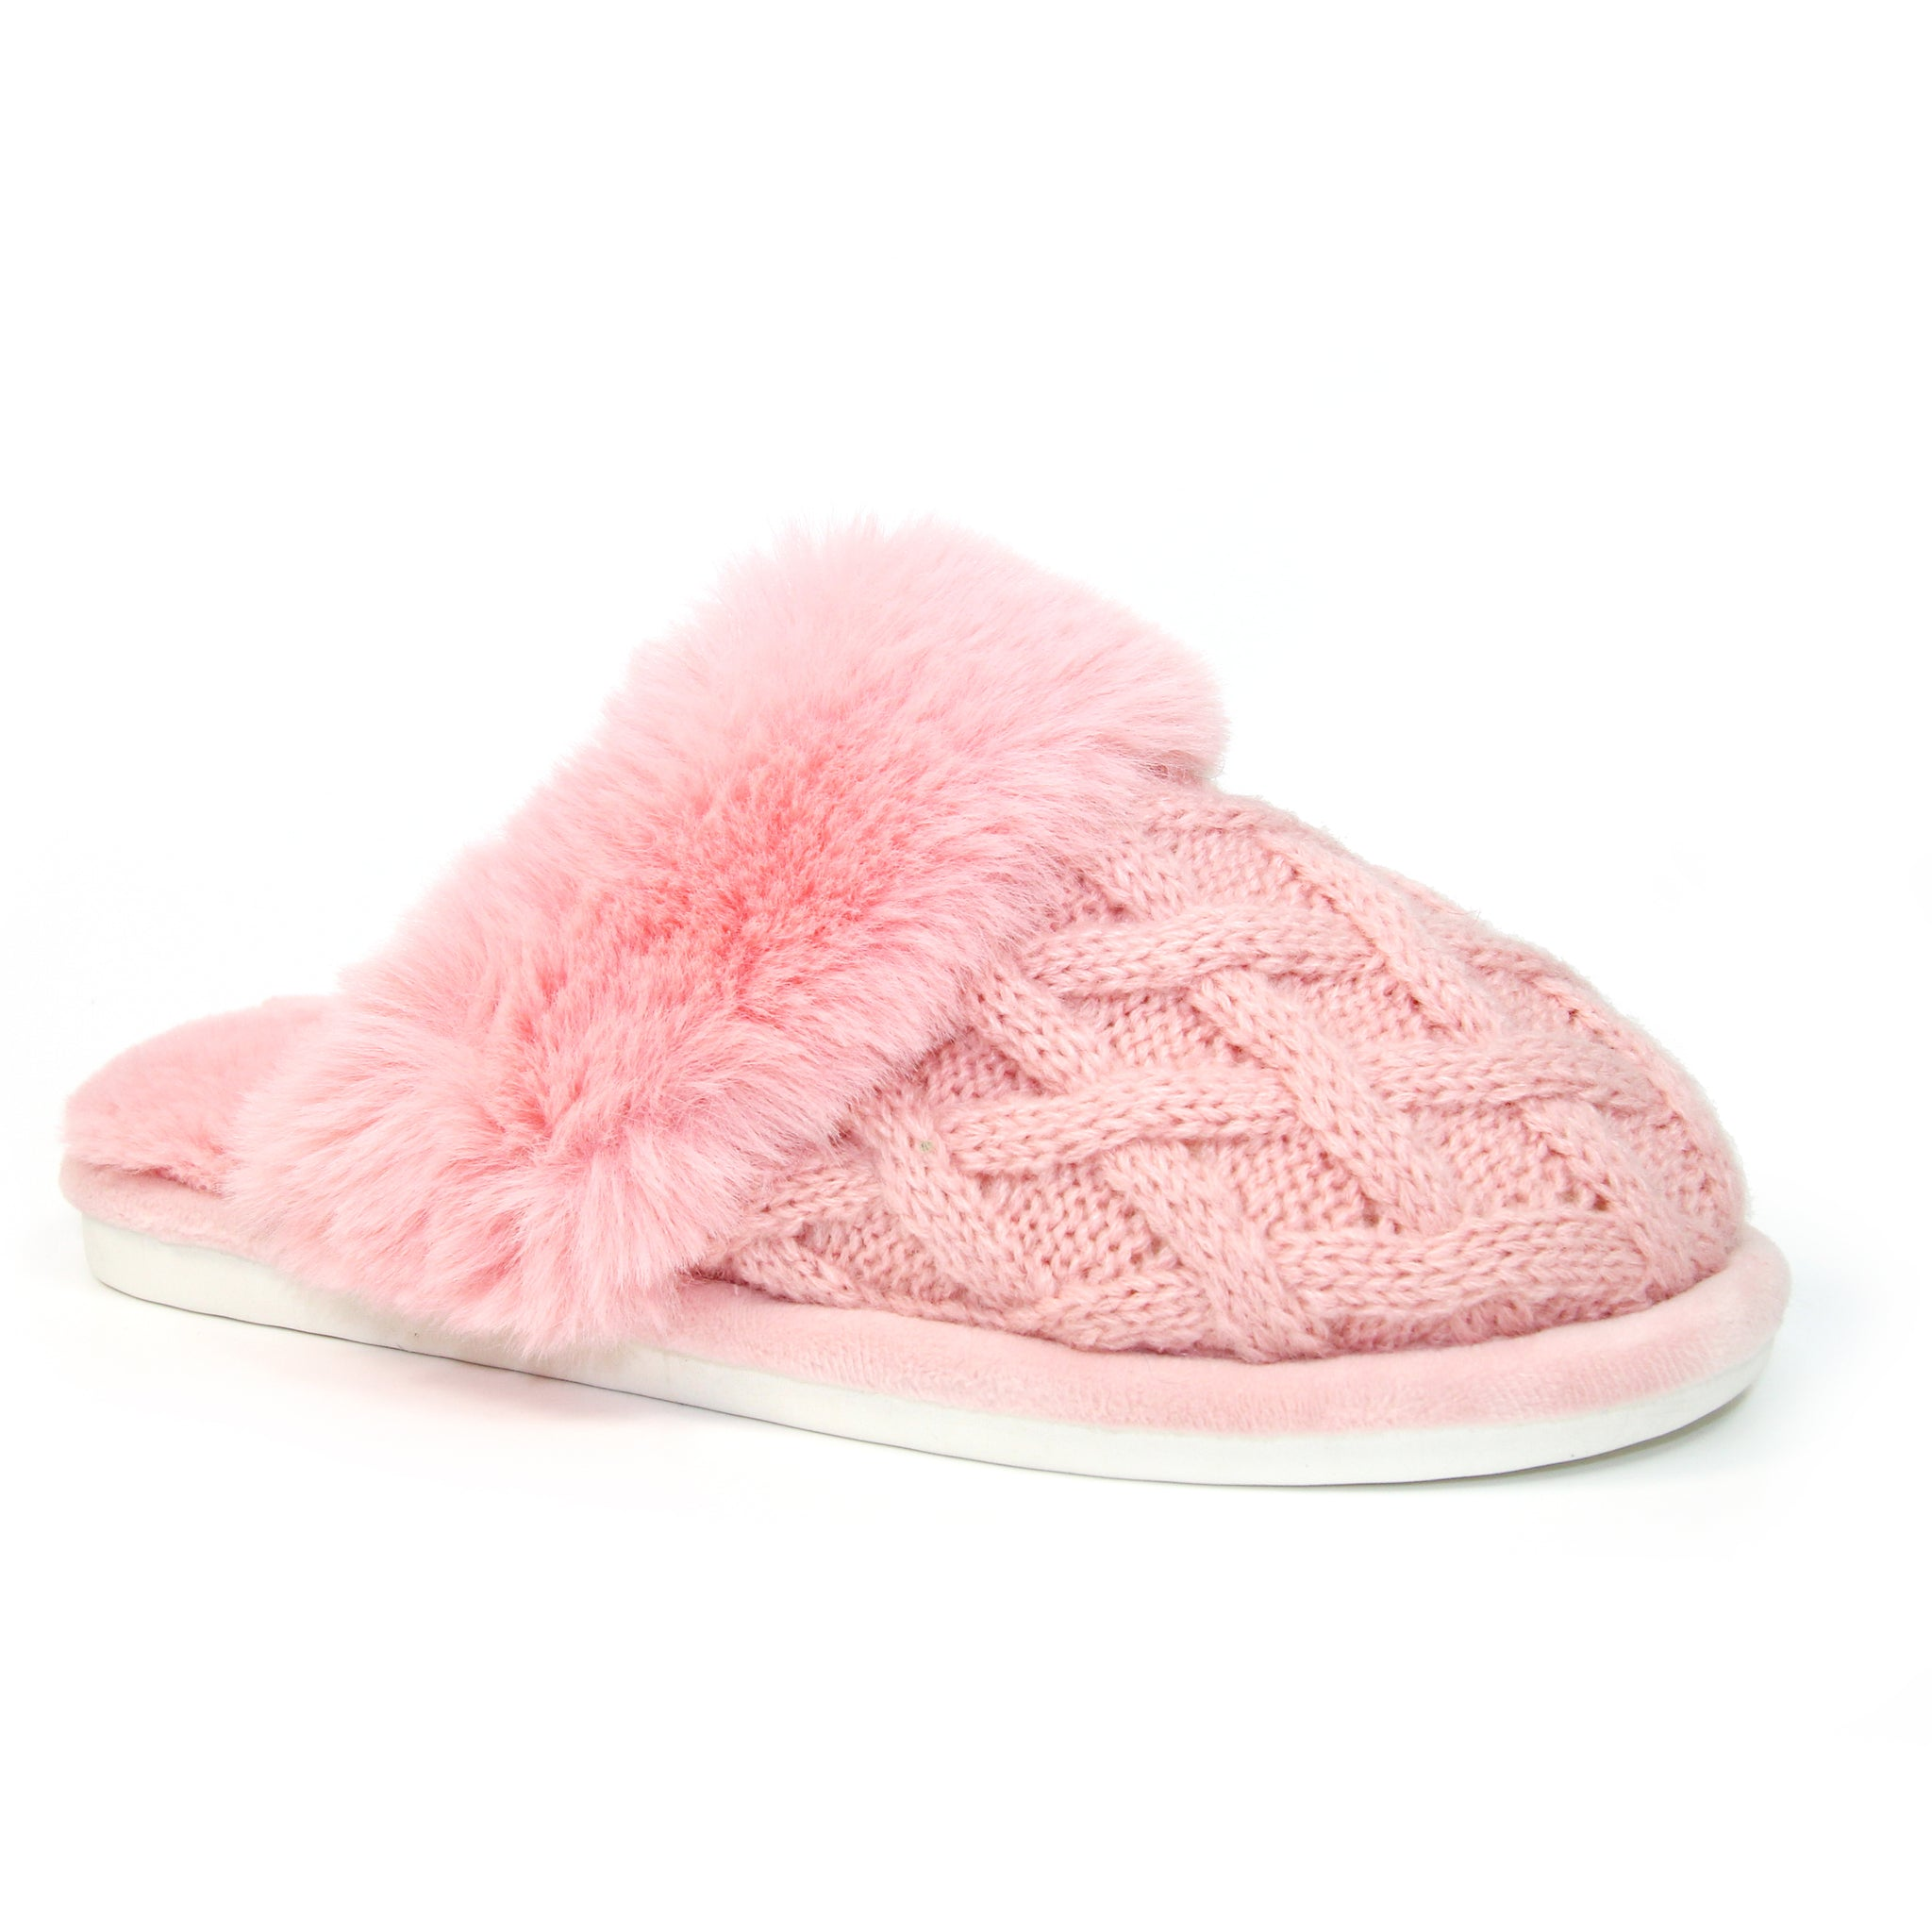 Lunar Ladies Shannon Quilted Mule Slipper